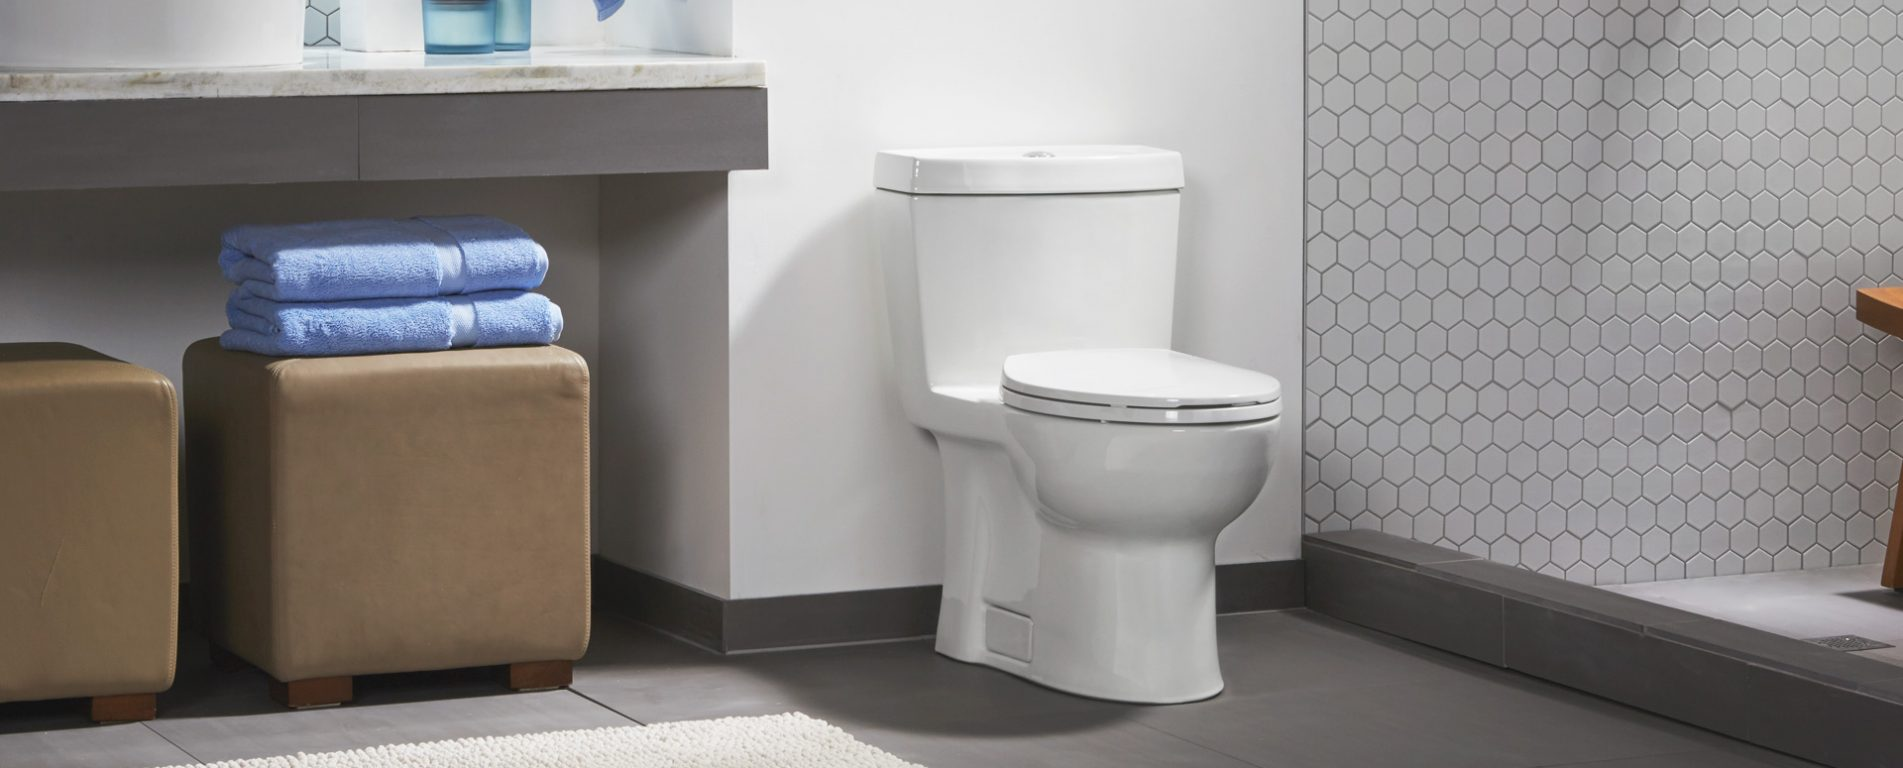 Niagara Stealth Toilet Review - 2021